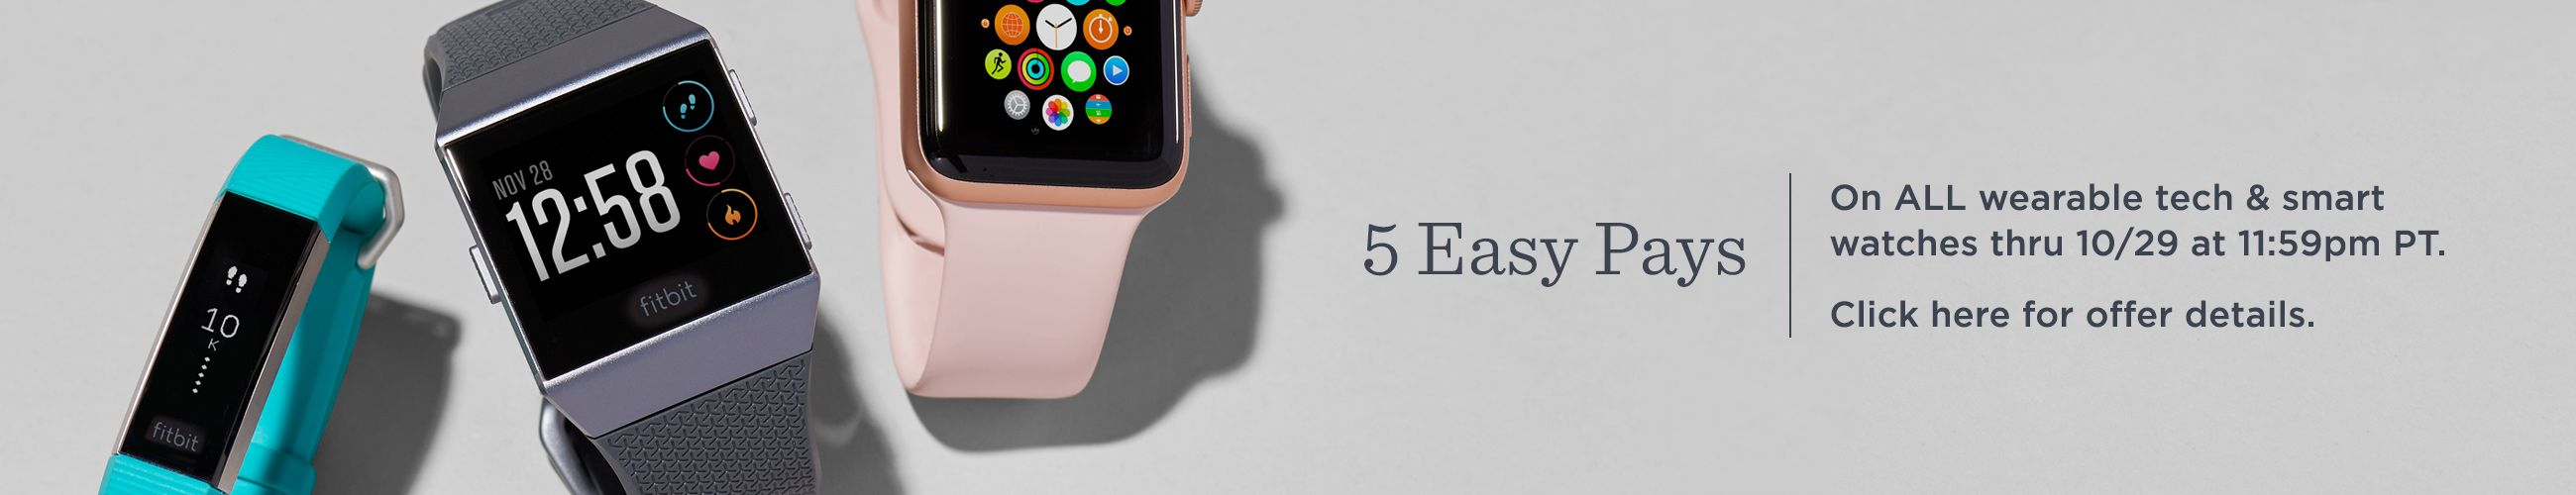 5 Easy Pays - On ALL wearable tech & smart watches thru 10/29 at 11:59pm PT.  Click here for offer details.